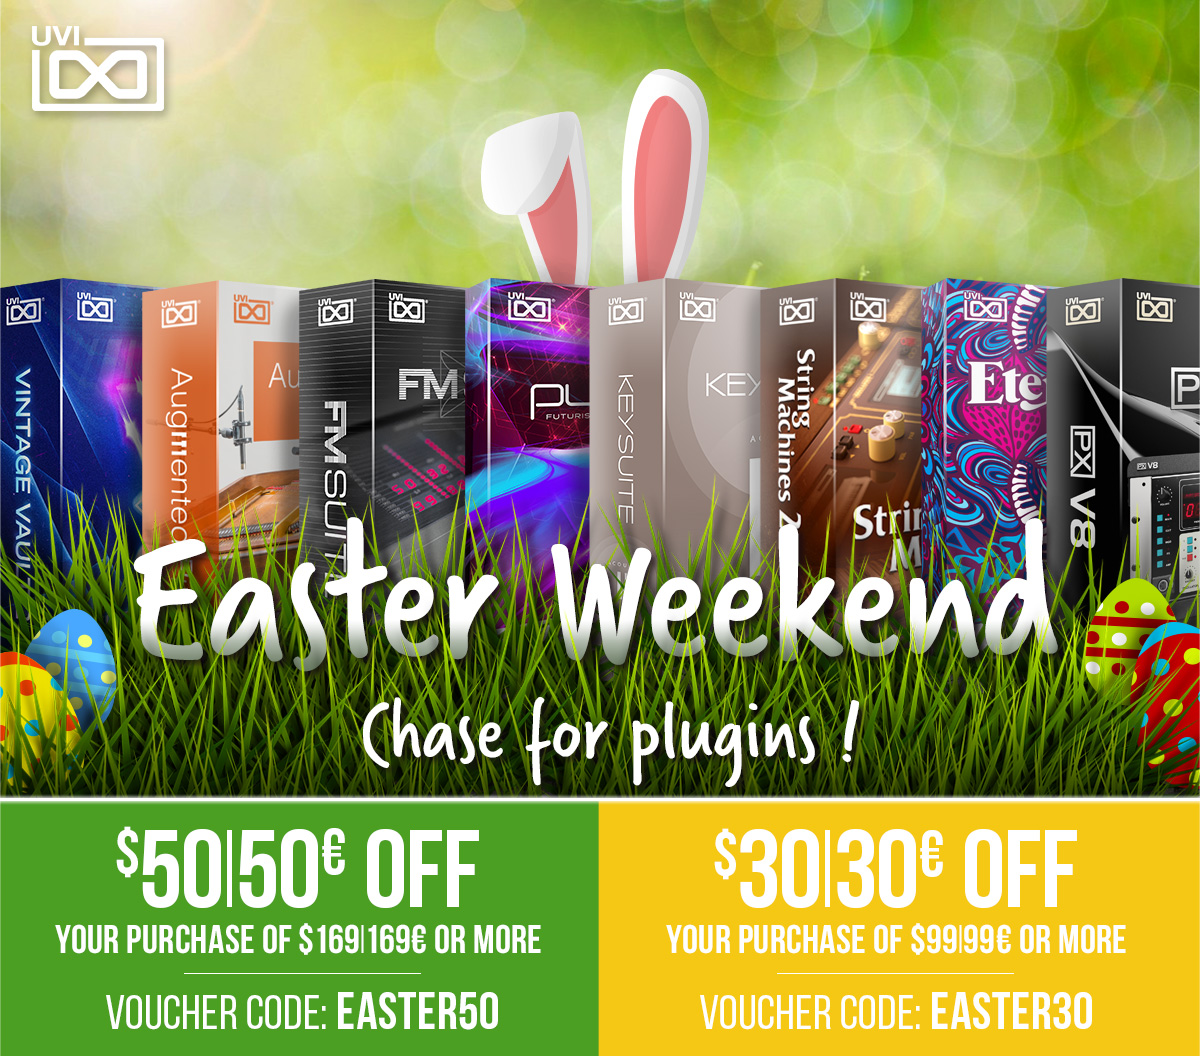 UVI Easter Sale With Discounts Up To $50/50€ On Falcon